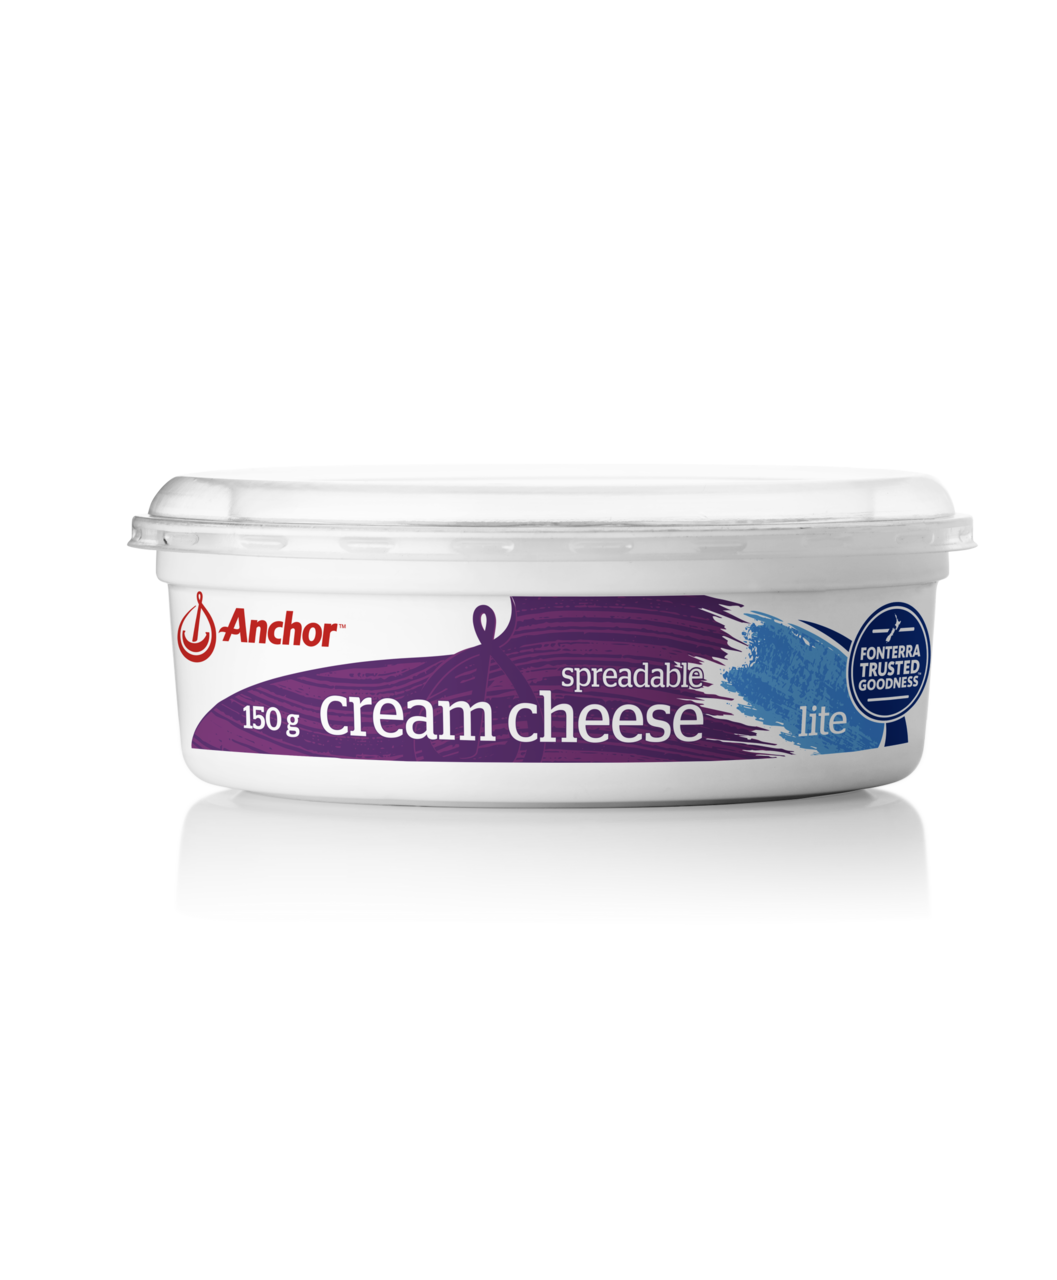 Anchor Cream Cheese Lite Spreadable 150g tub